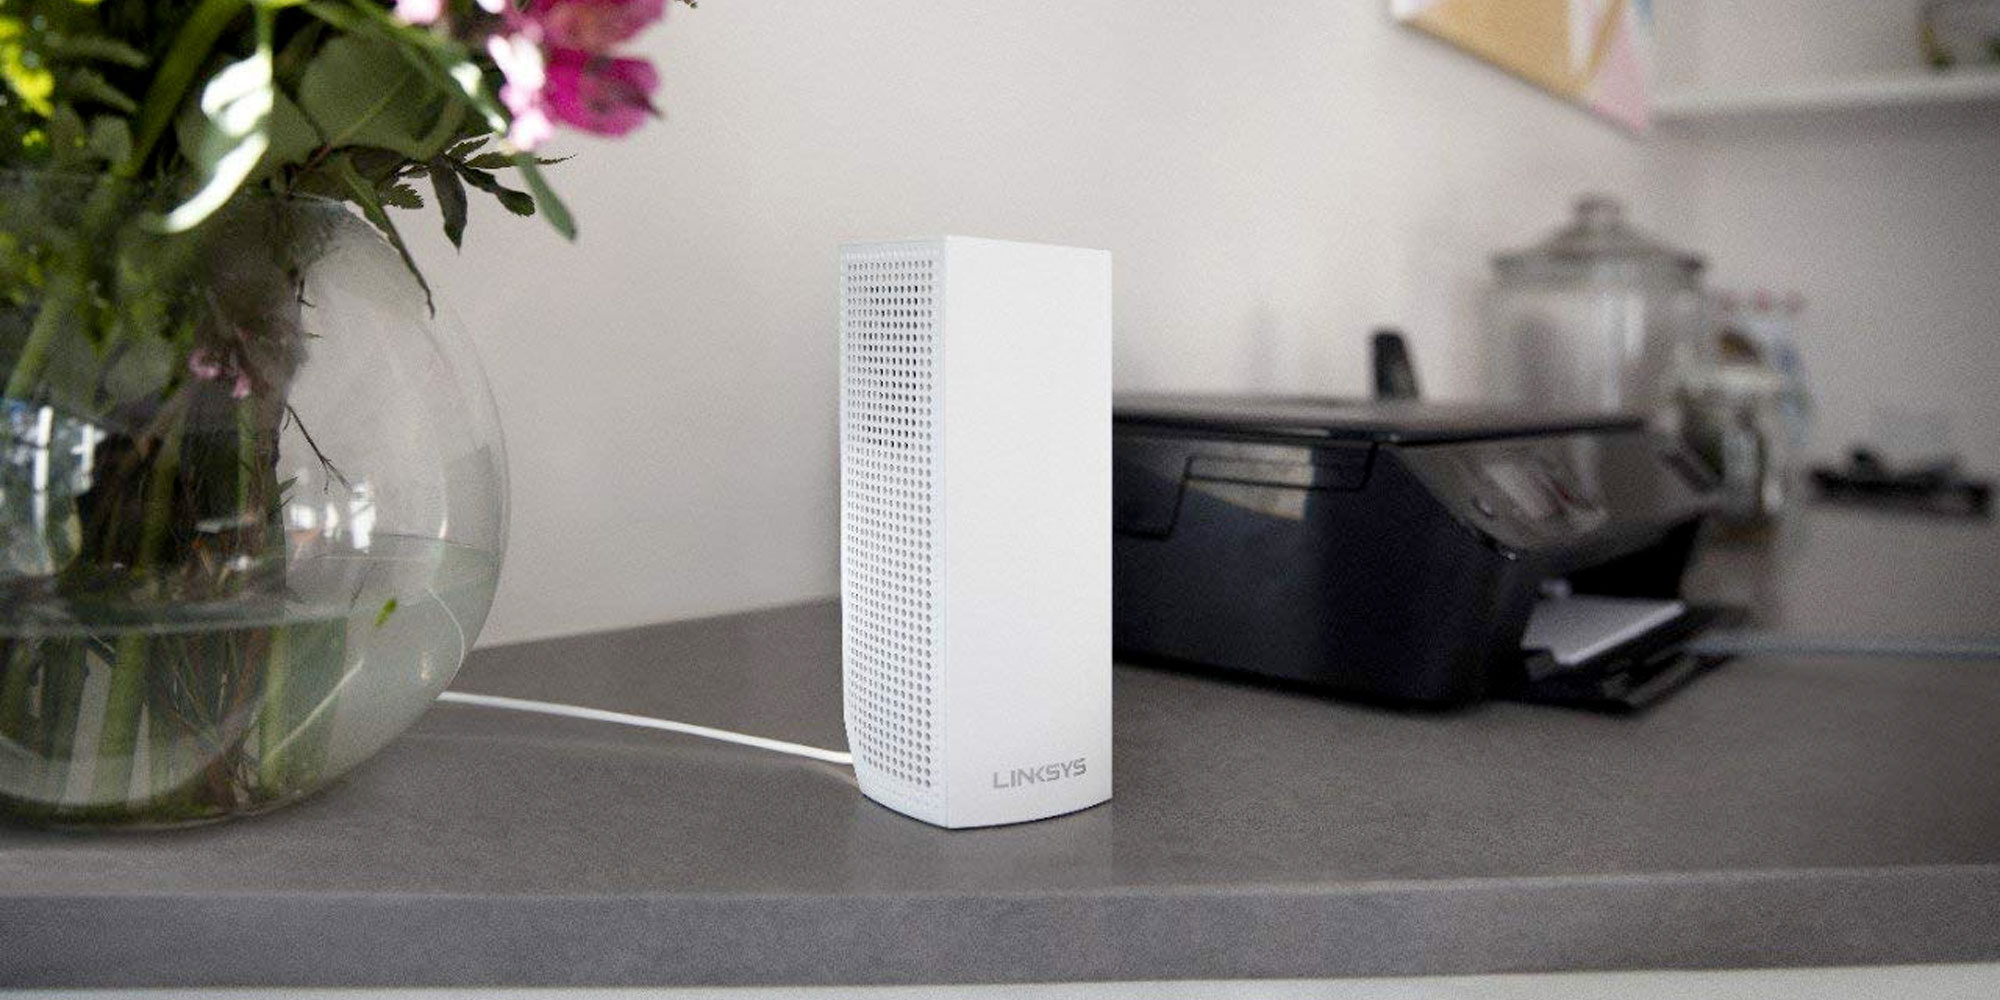 Linksys Velop Mesh Tri-Band 802.11ac Wi-Fi System drops to $250 shipped (Save $100)